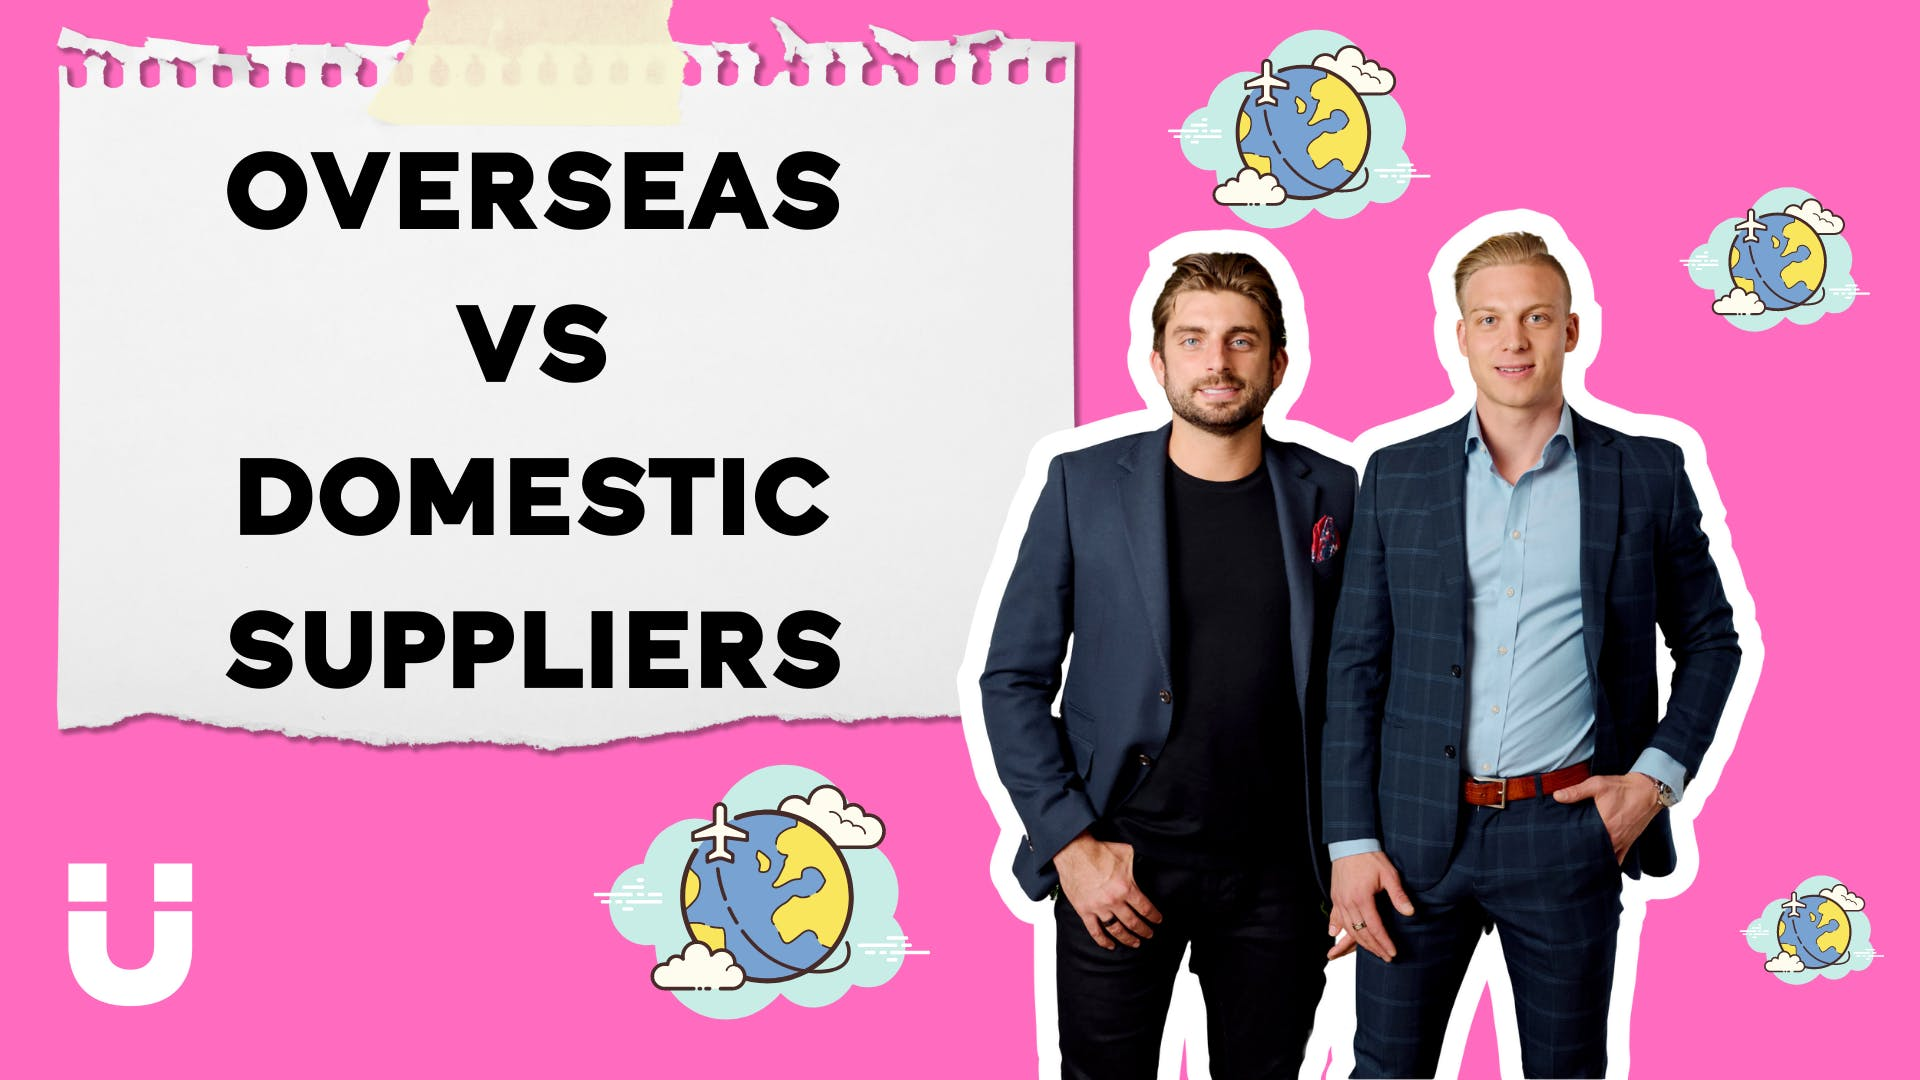 Overseas VS Domestic suppliers... Sourci Founders Giovanni Pino and Ellie Vaisman sit down to chat about the advantages and disadvantages of working with domestic and overseas suppliers!